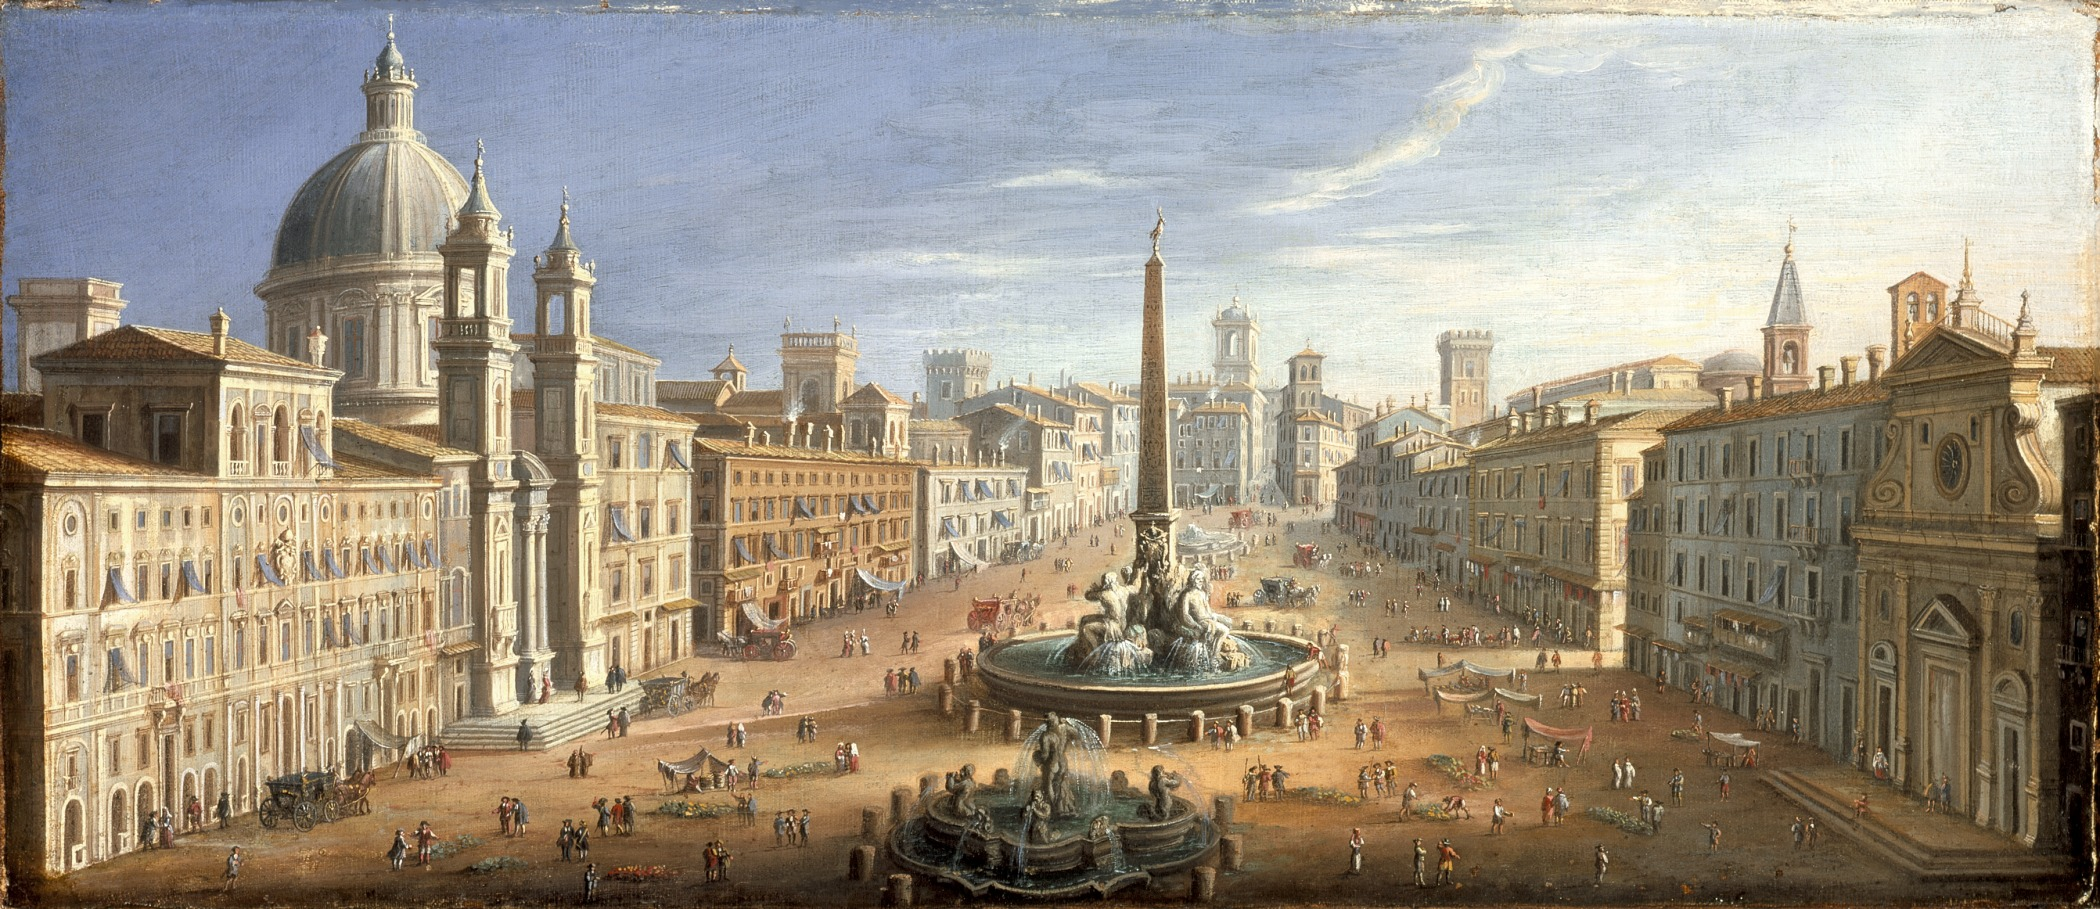 View of Piazza Navona, Rome, Italy, by Hendrik Franz van Lint. c. 1730.